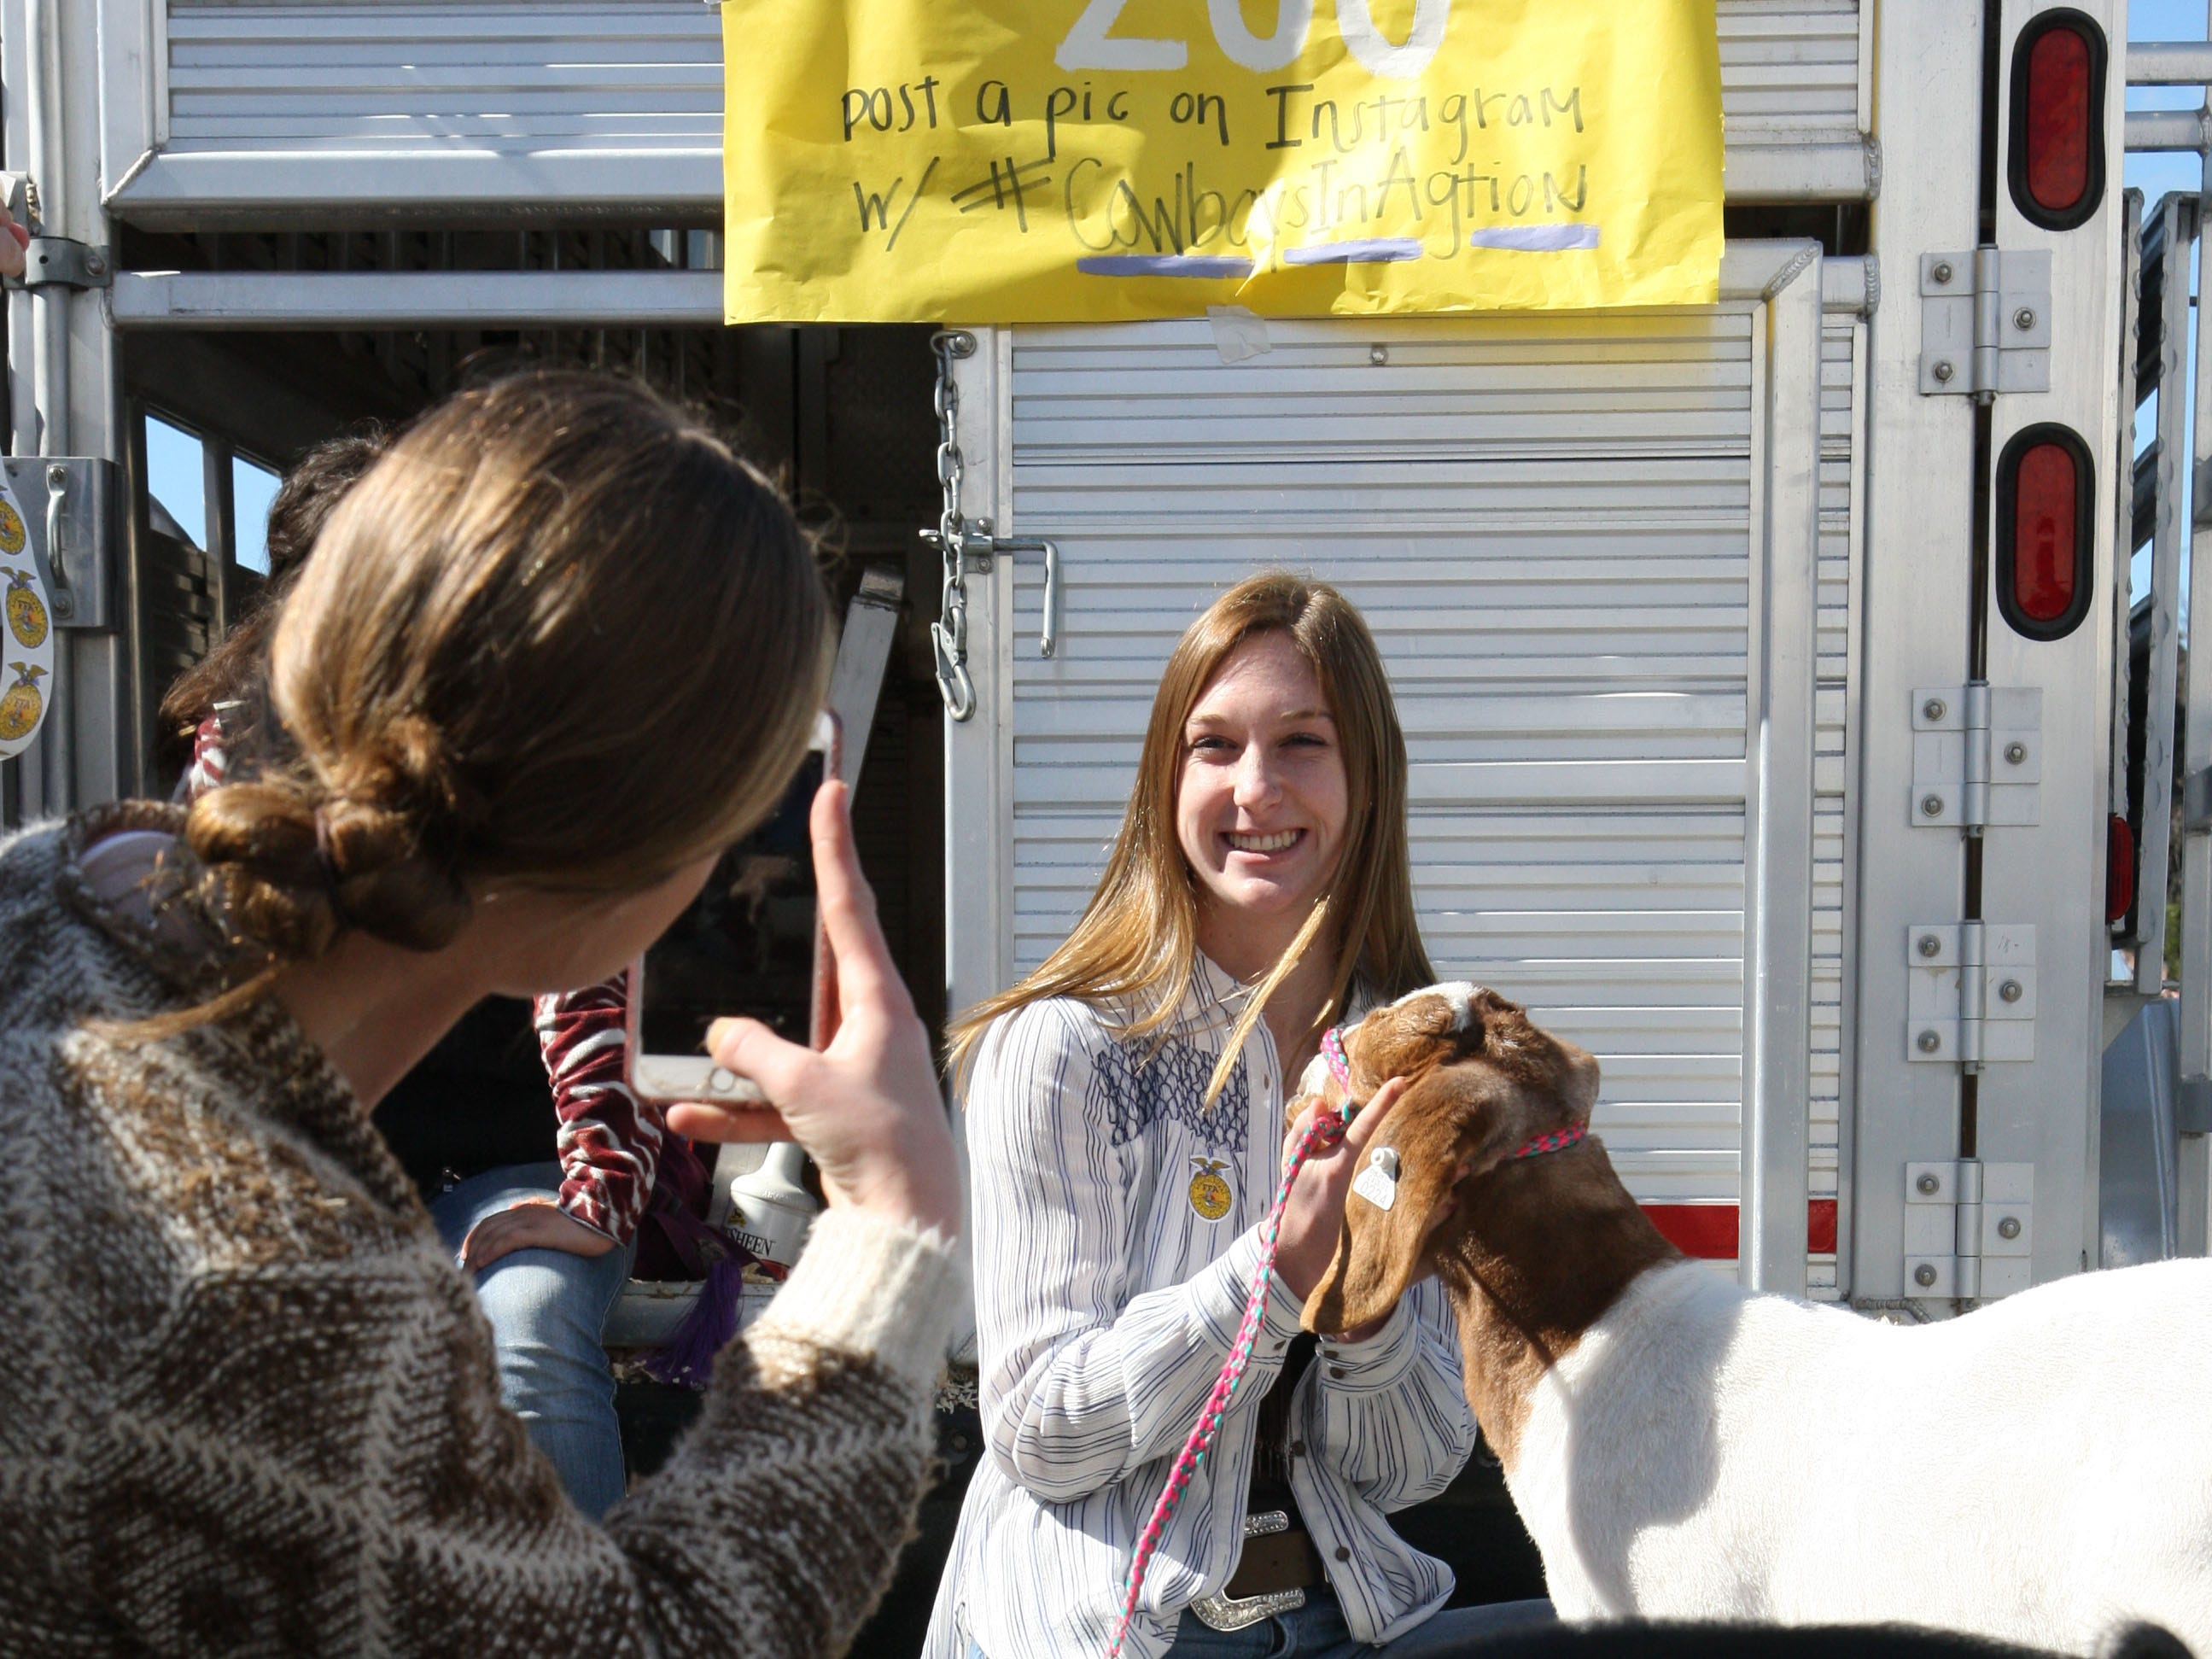 One of the students takes a photo of another student posing with a goat.